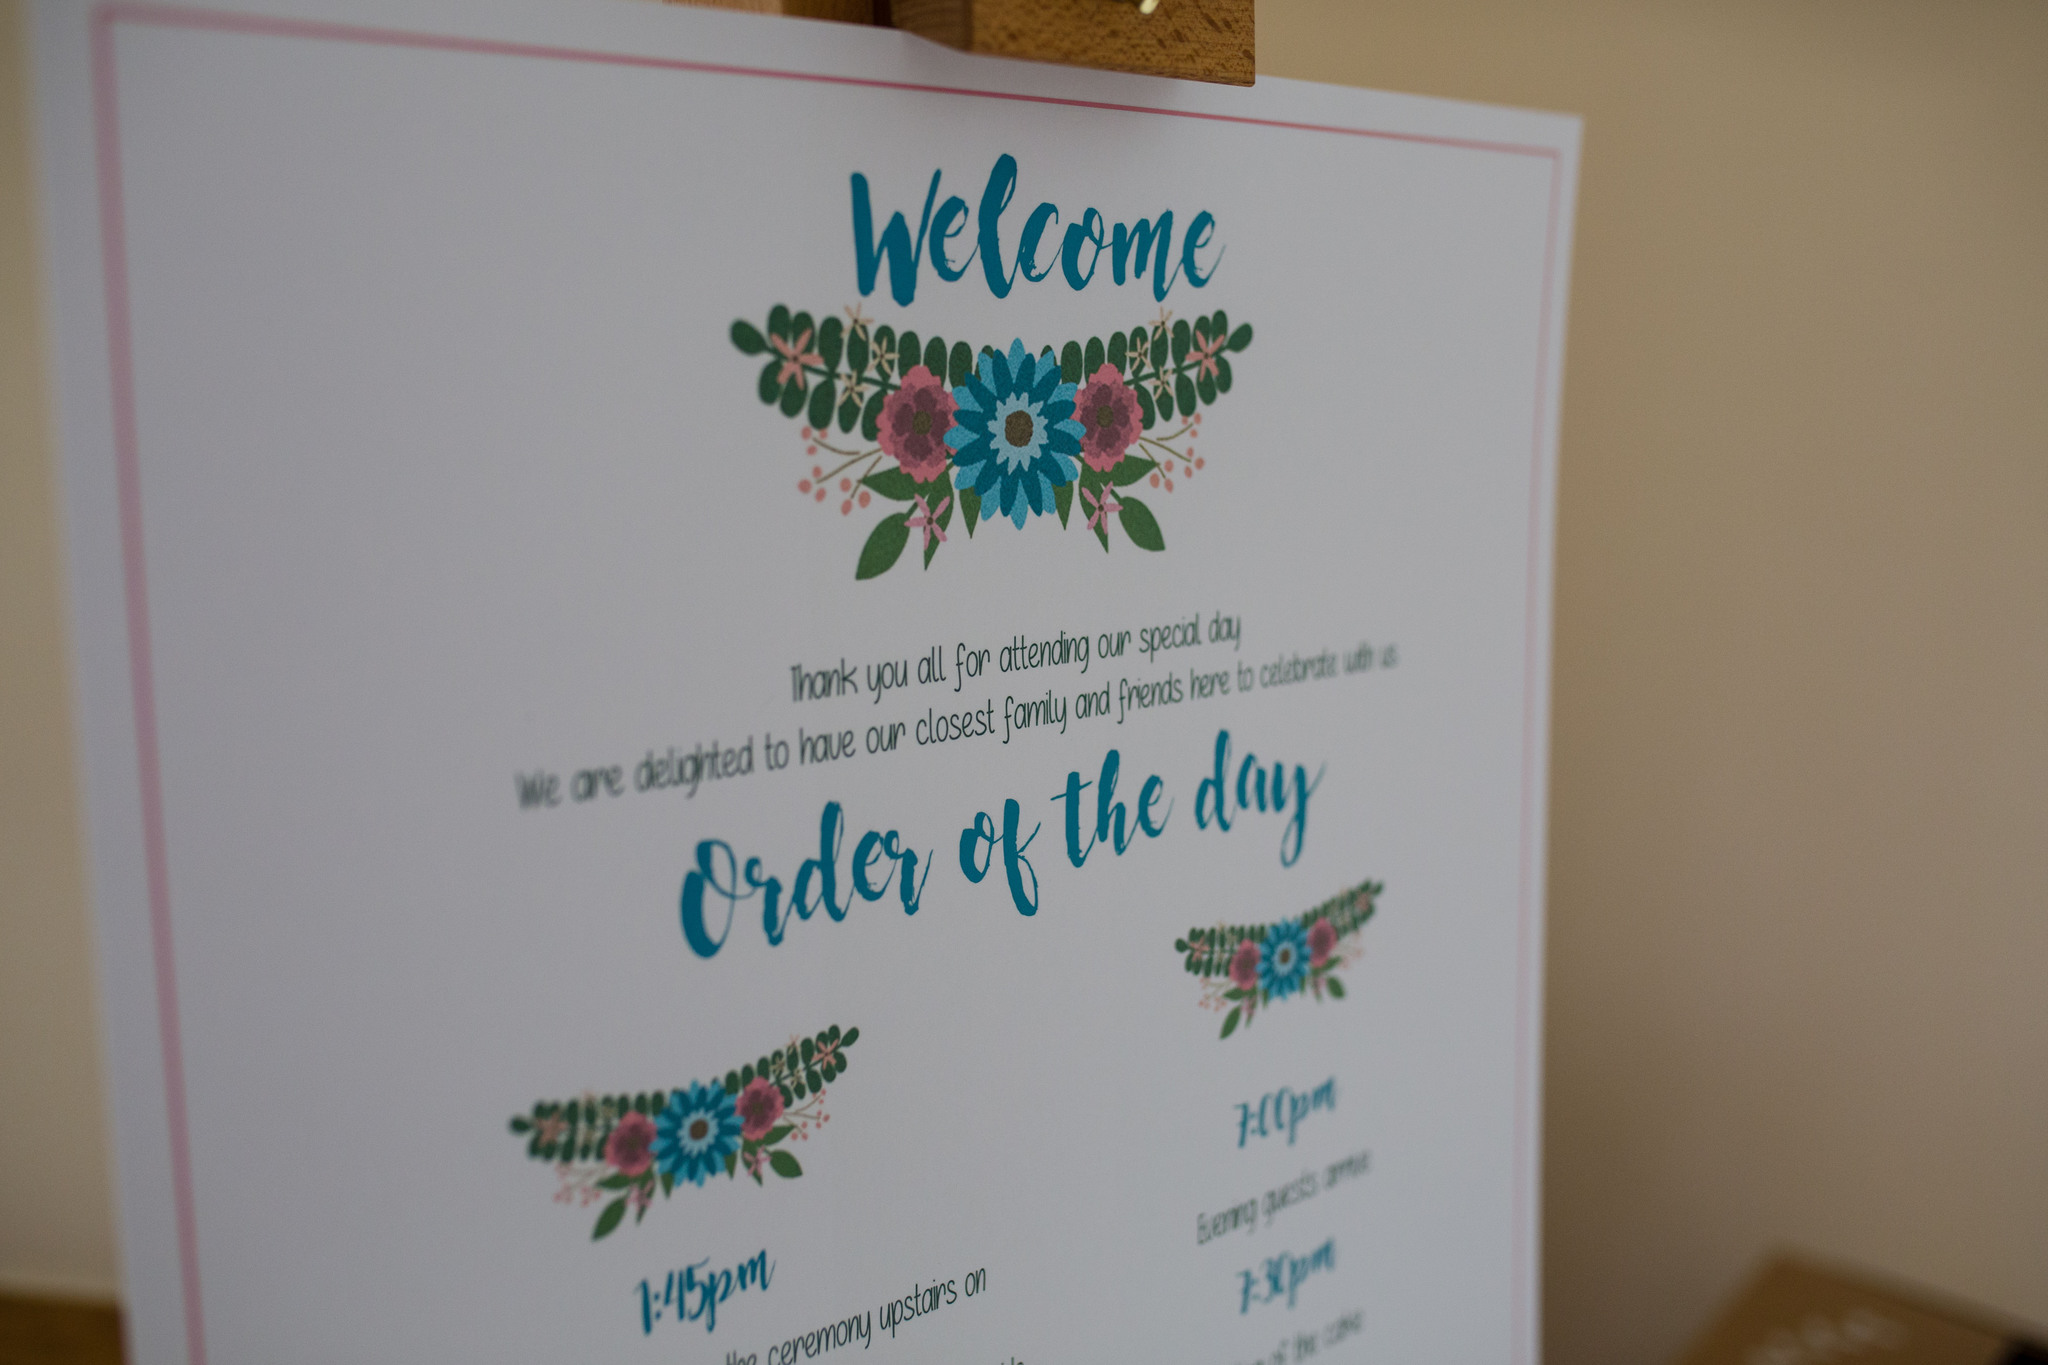 Order of the day sign with hand painted cake images Delbury Hall